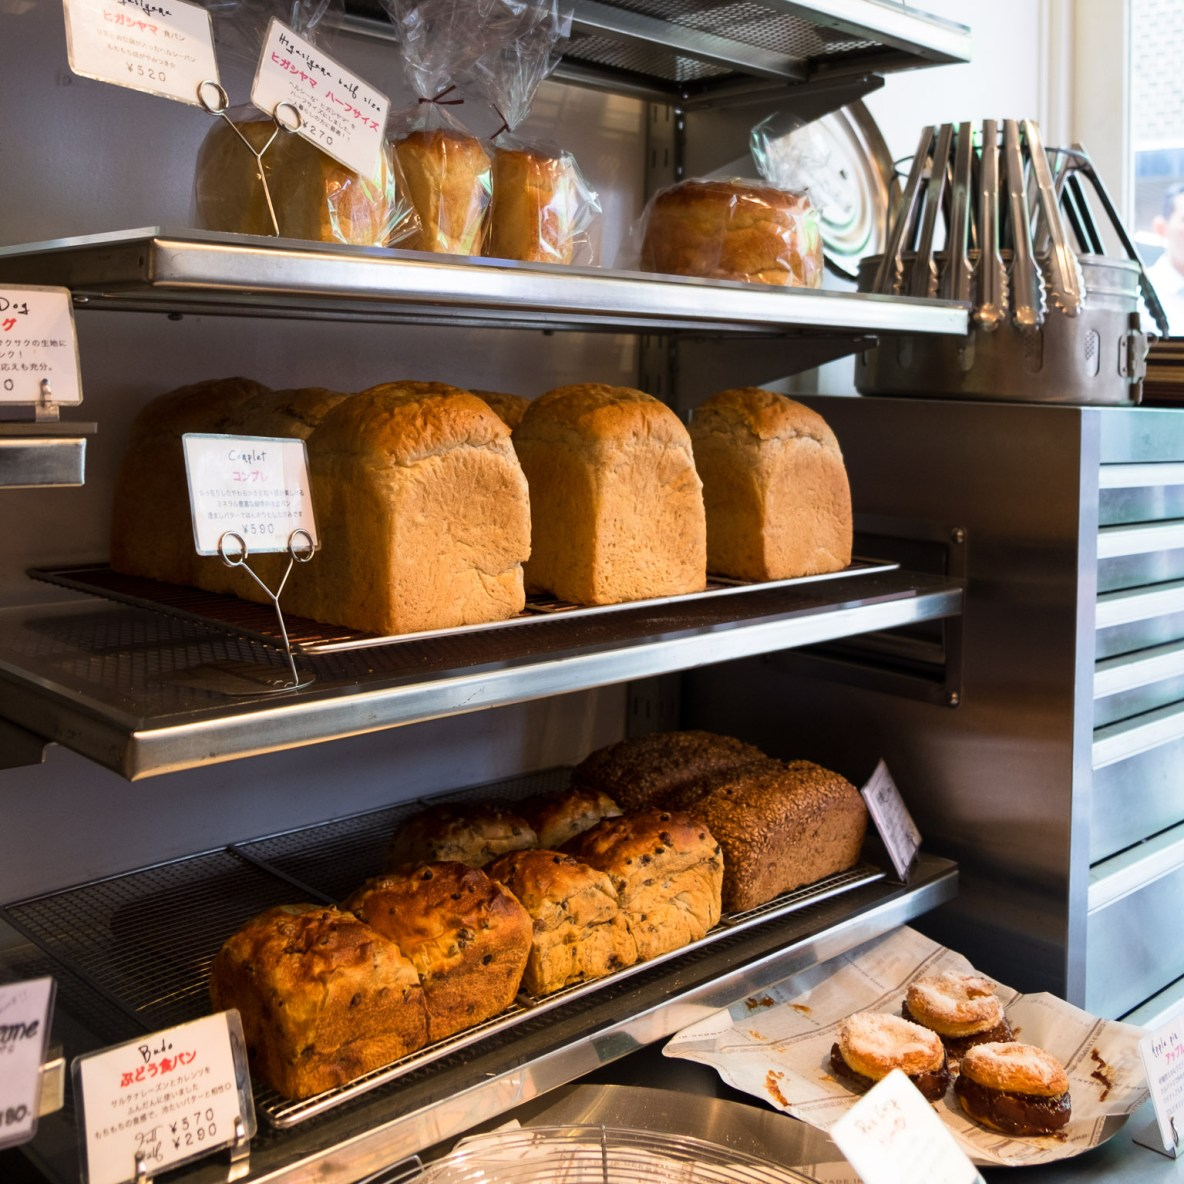 Trendy little bread shop fashioned by a proudly obsessive chef